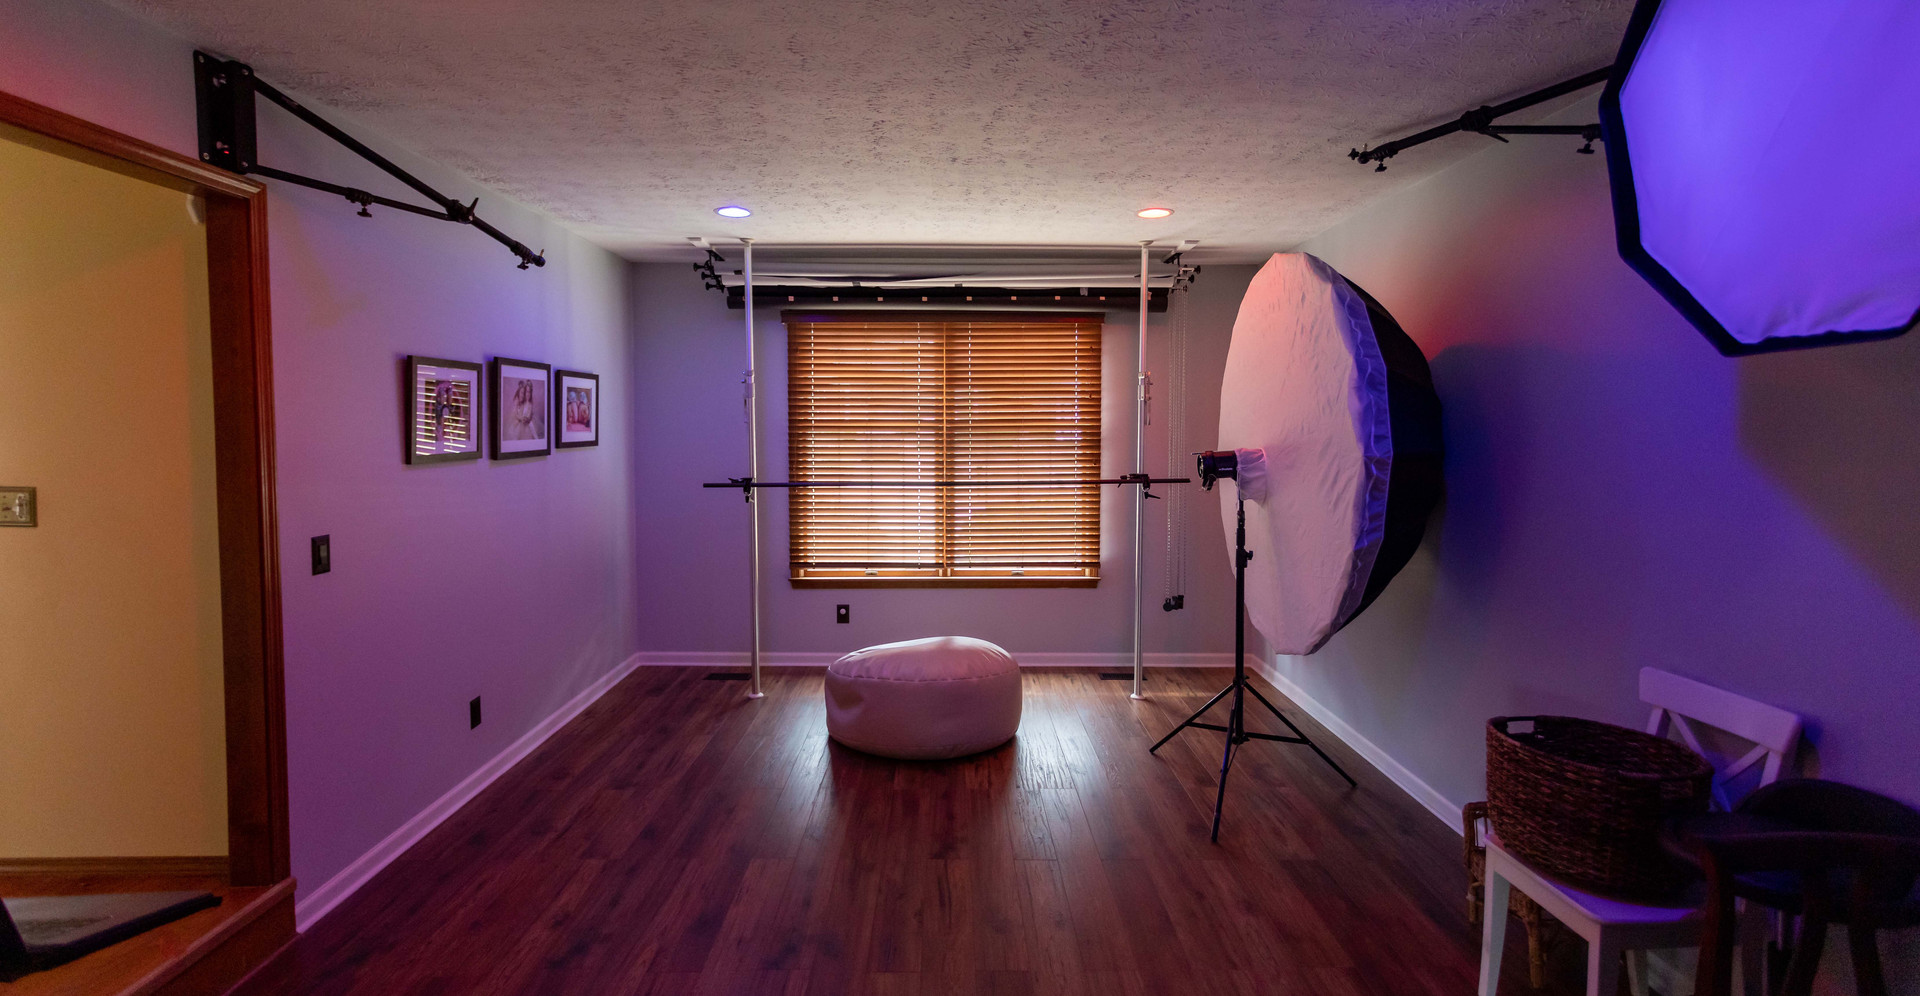 Welcome to the photography studio!